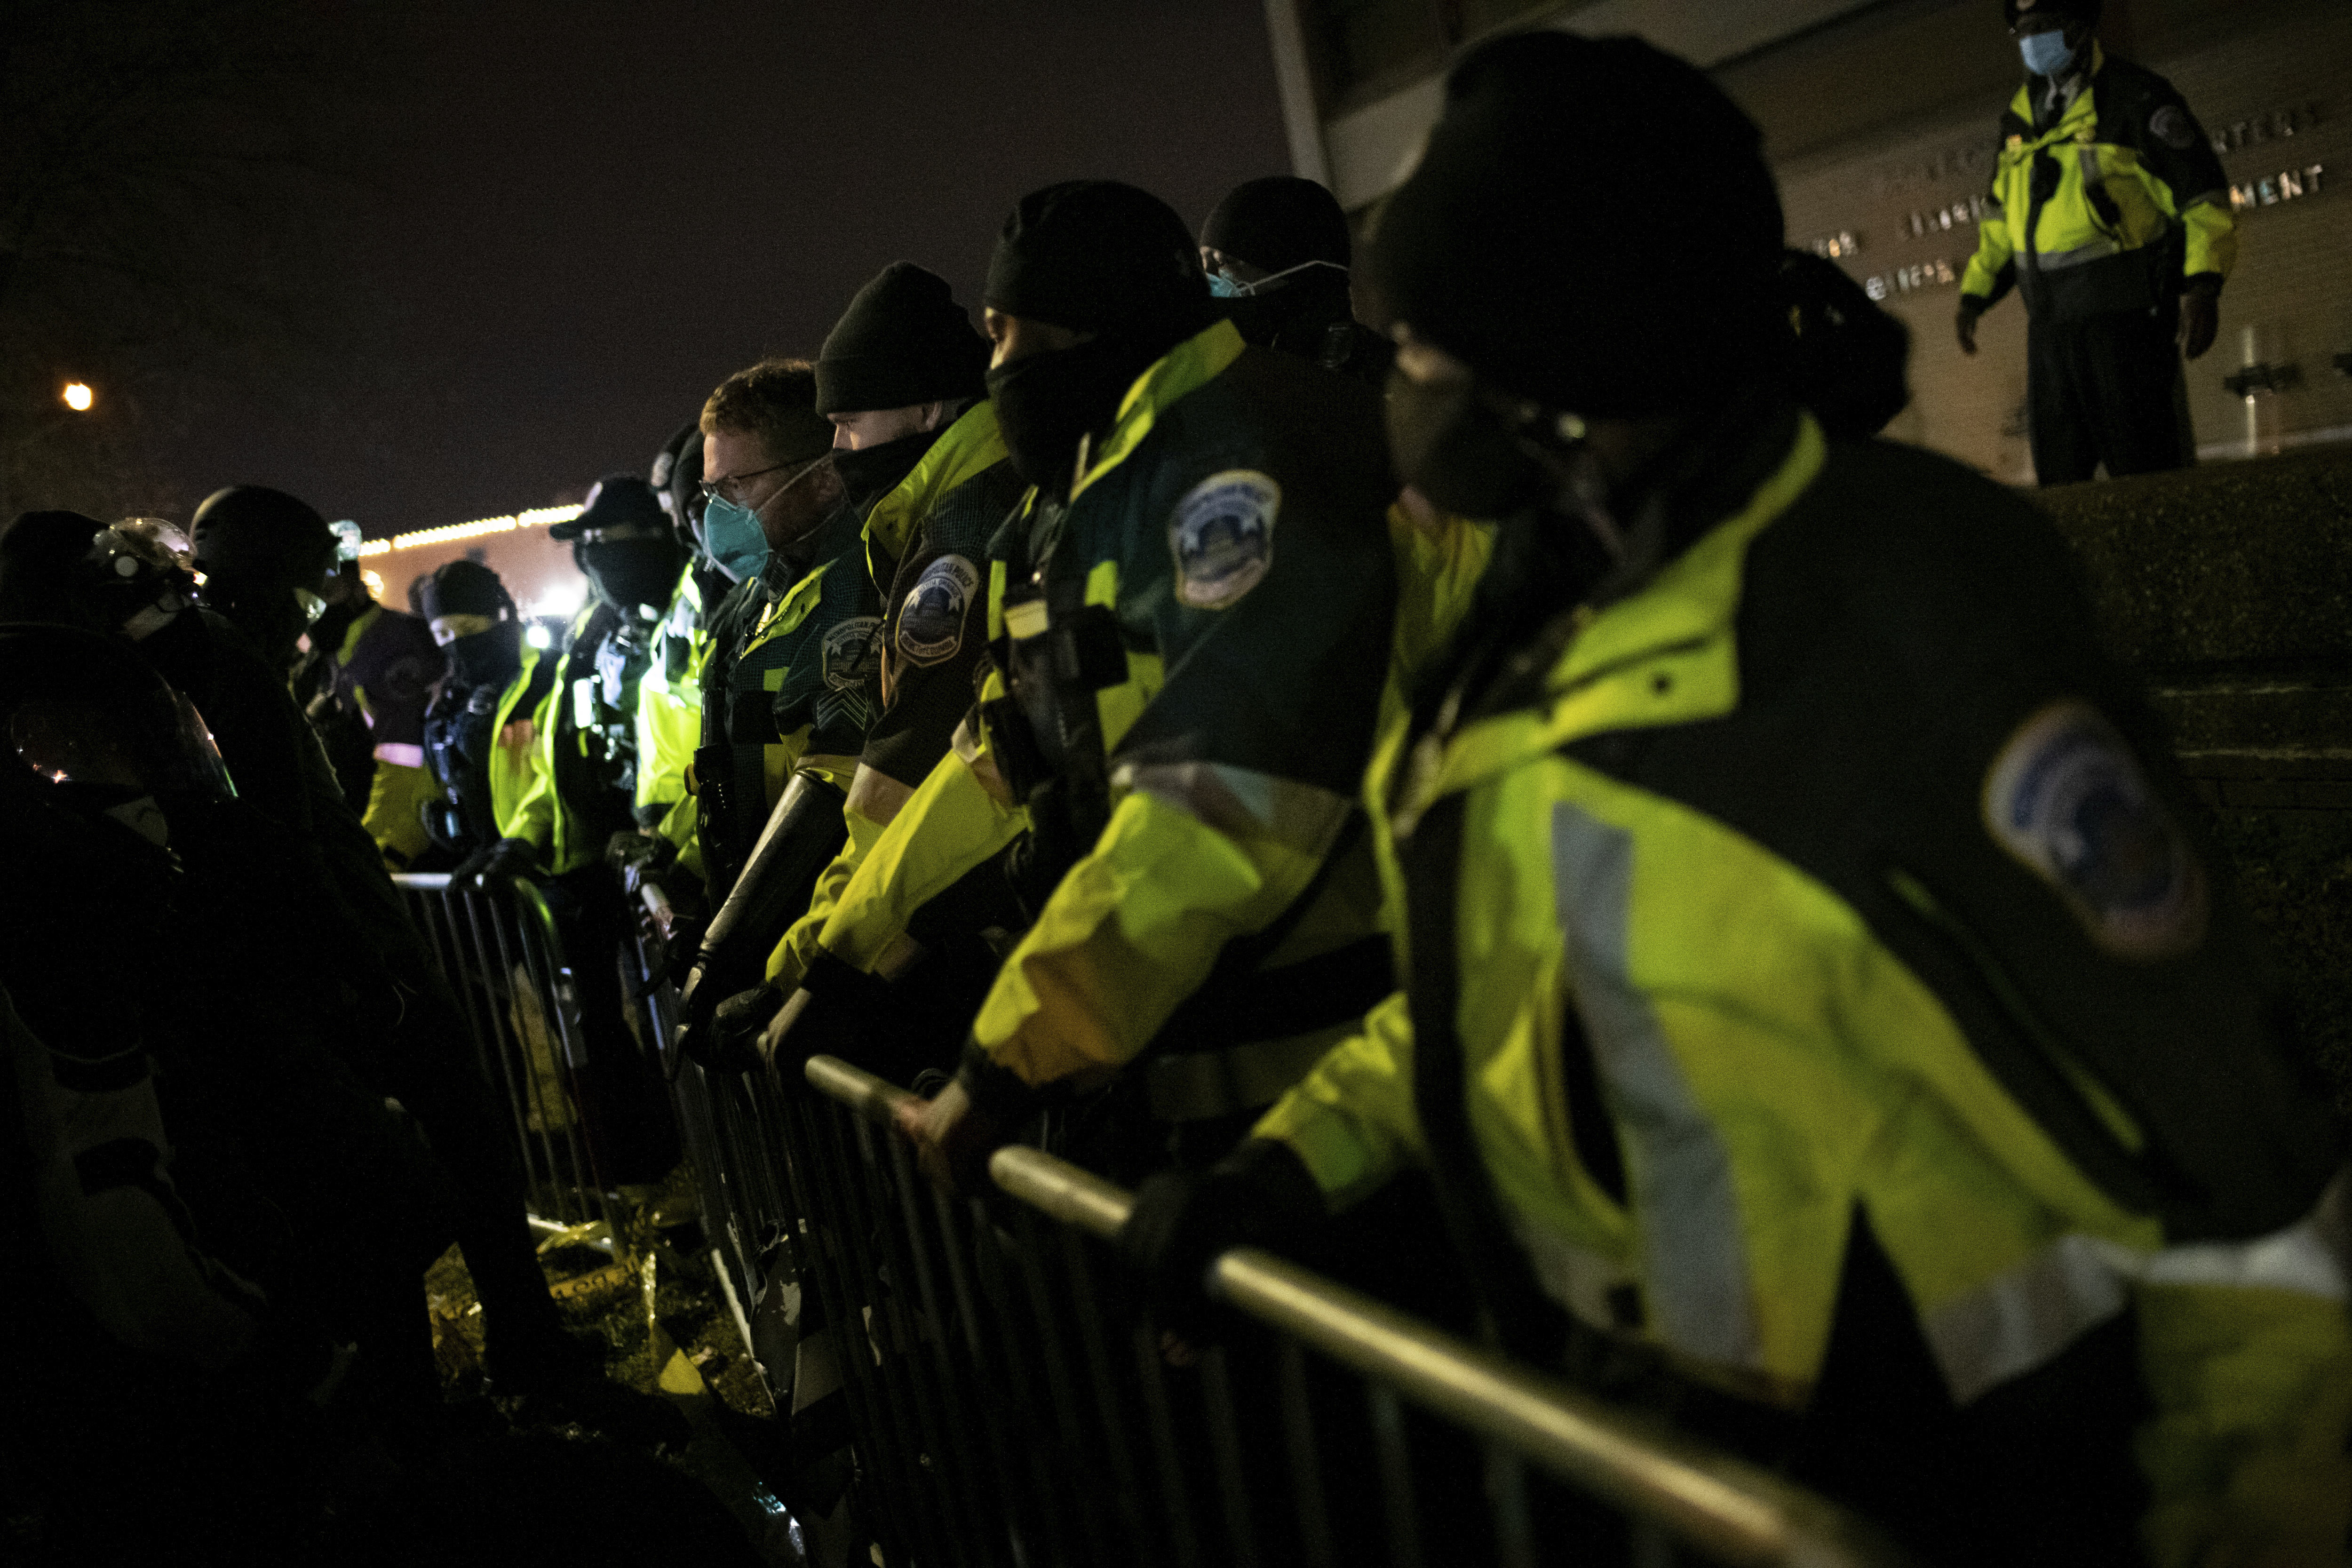 Police officers face off with protesters in Washington, D.C. on Dec. 19, 2020.